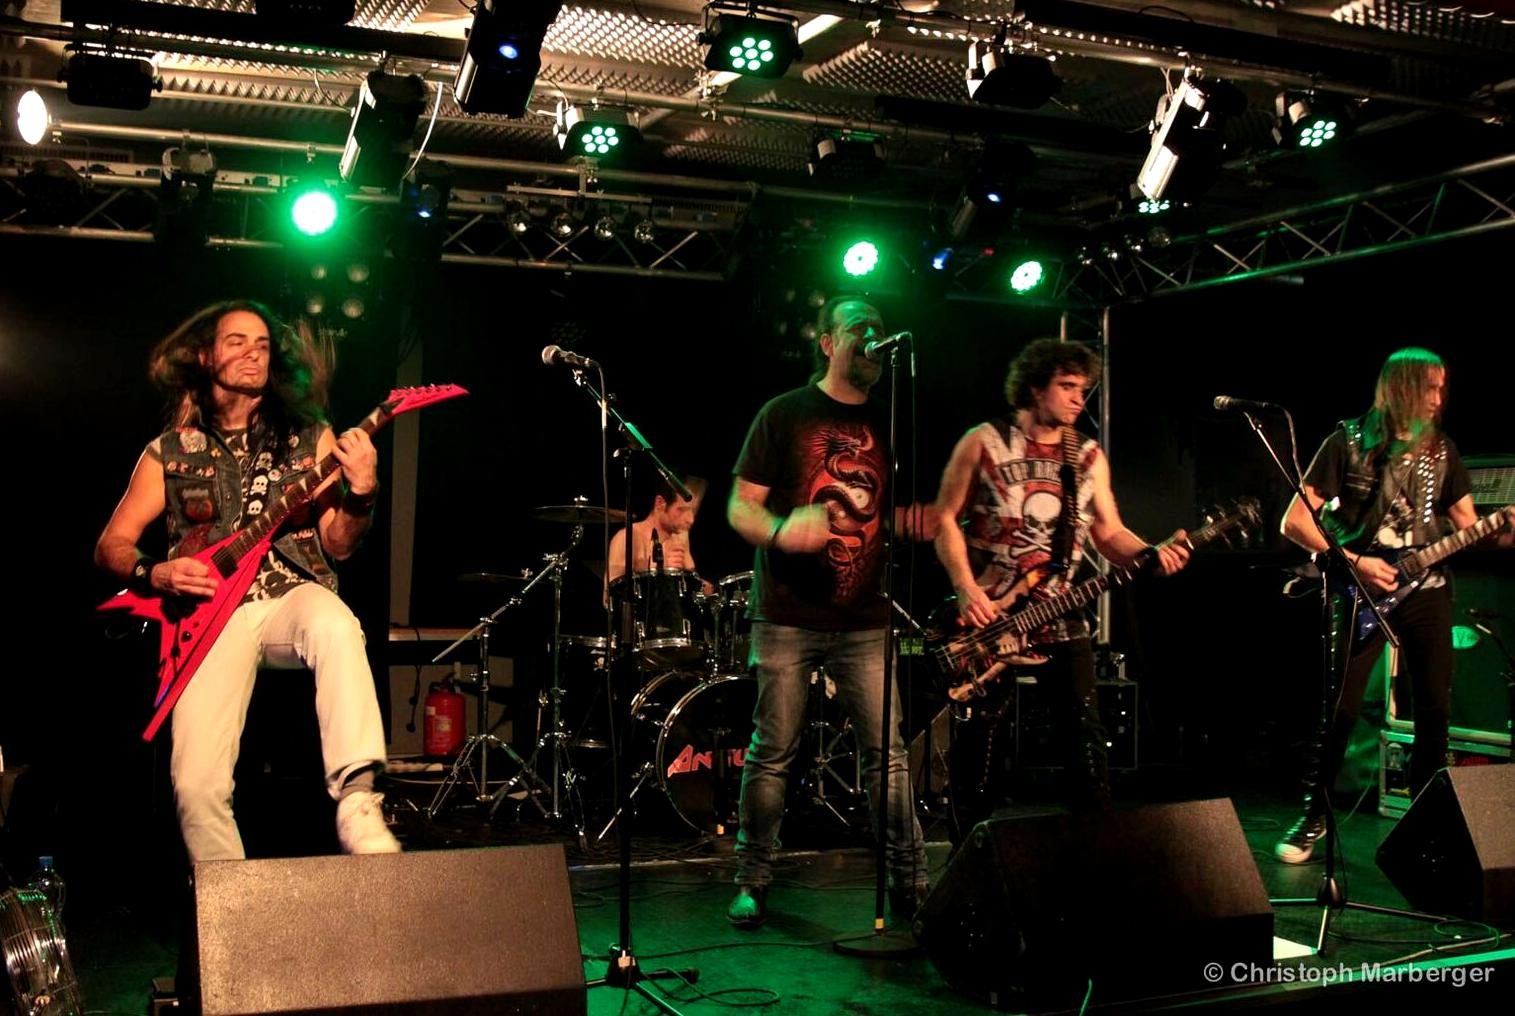 Anguish Force Livestage 63 - Raining Blood Night - Livestage Innsbruck - live